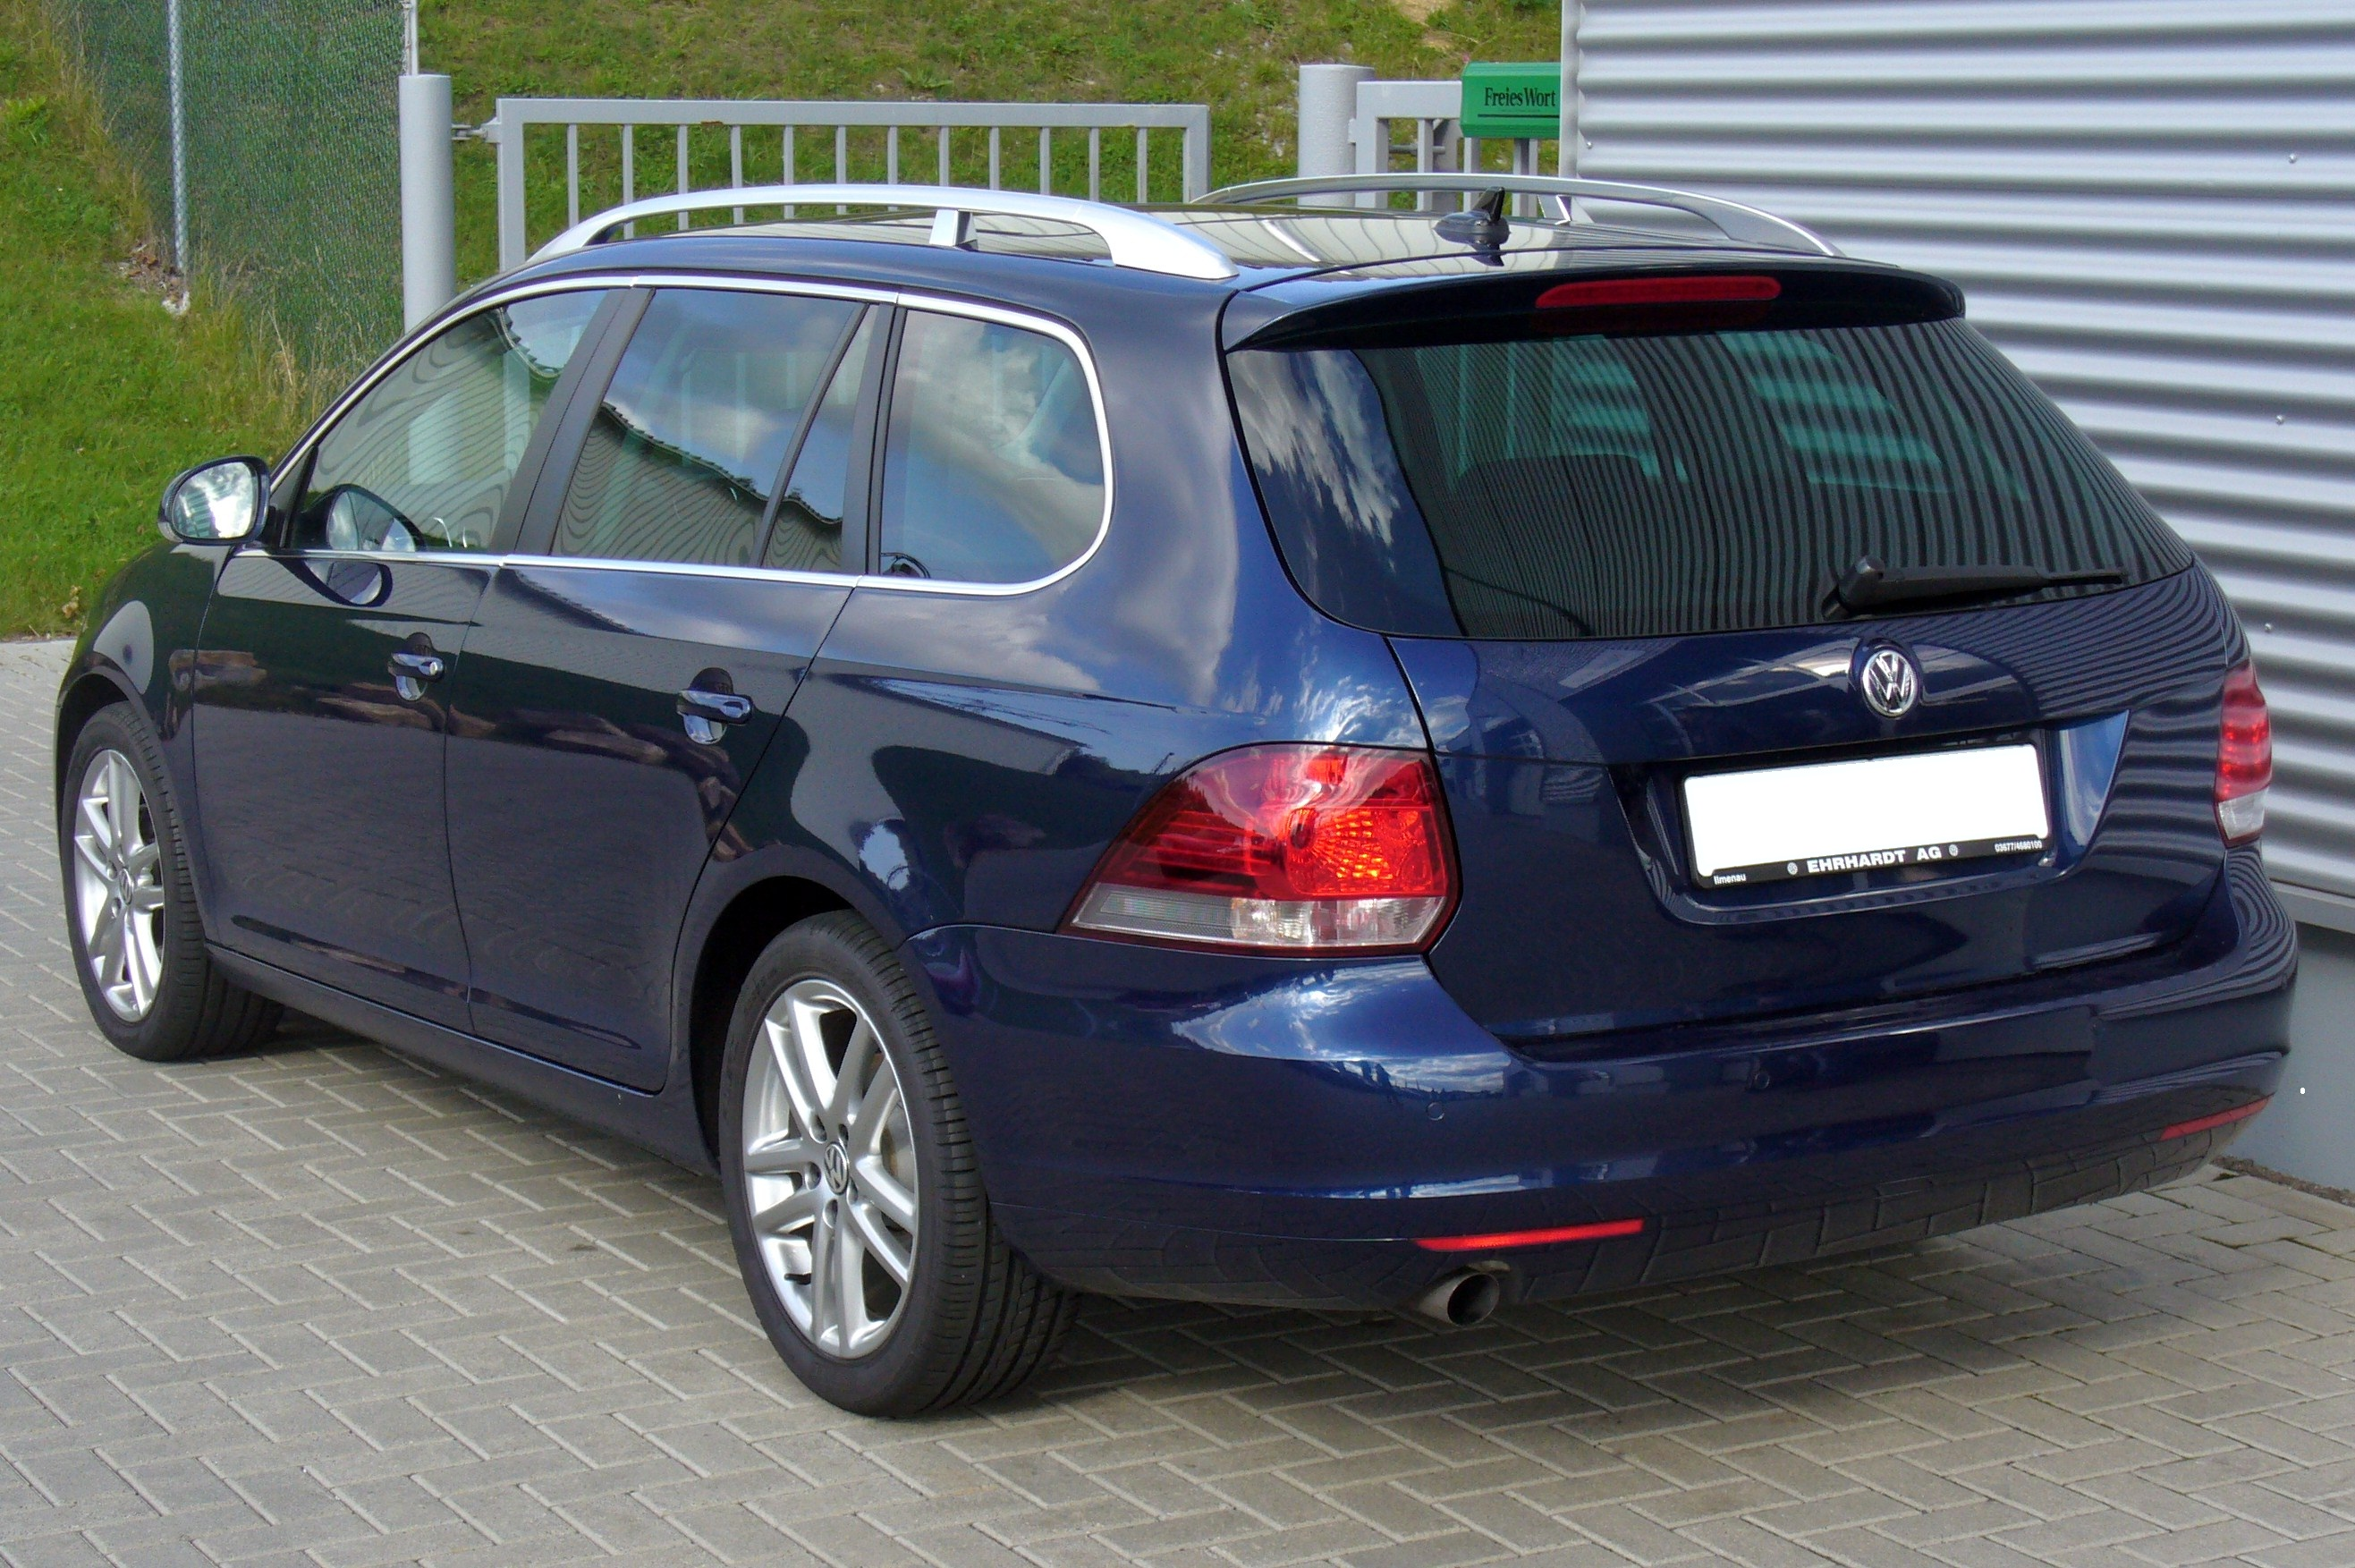 Golf Gti Wiki >> File:VW Golf Variant VI 1.6 TDI Highline Shadow Blue Heck.JPG - Wikimedia Commons